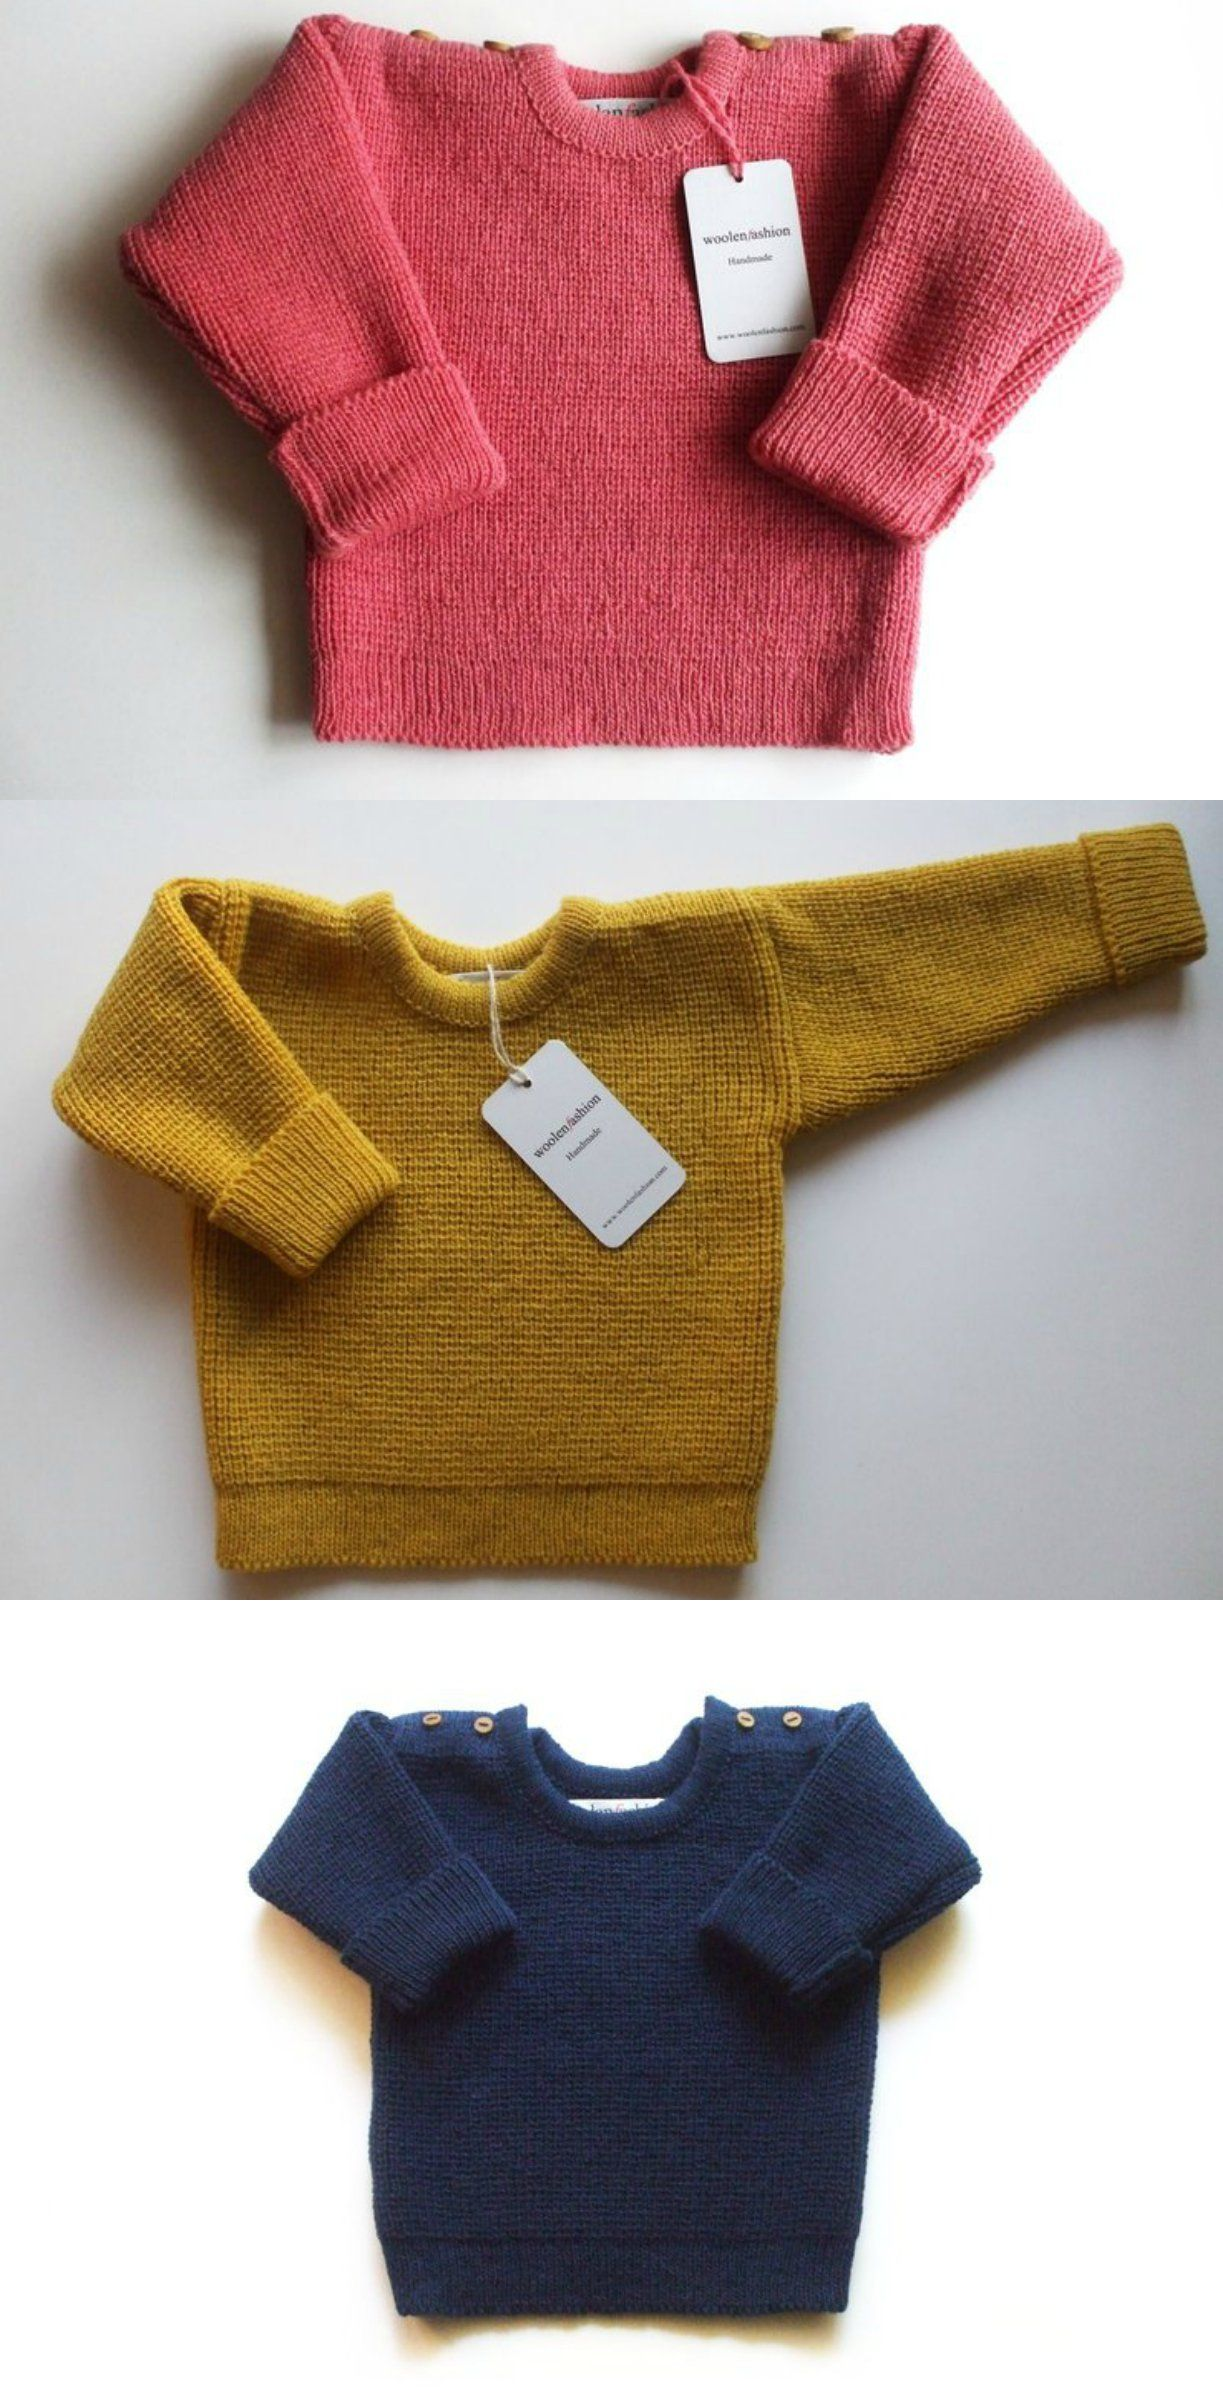 Babies/Children\'s knitted lambswool sweater   Pinterest   Unique ...